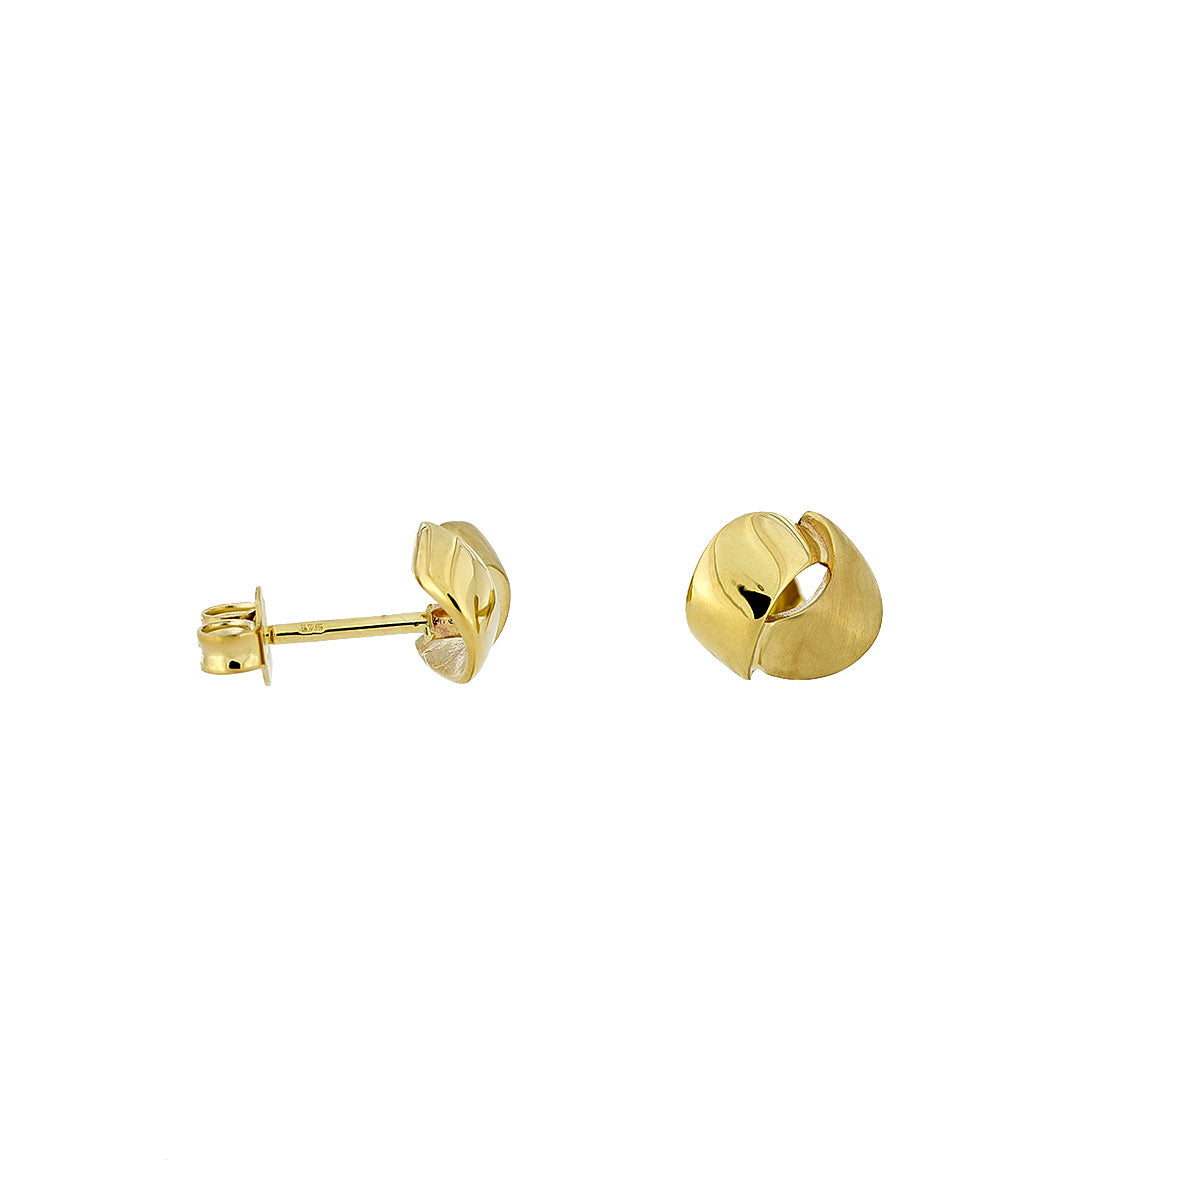 Gold Satin & Polished Curves Studs